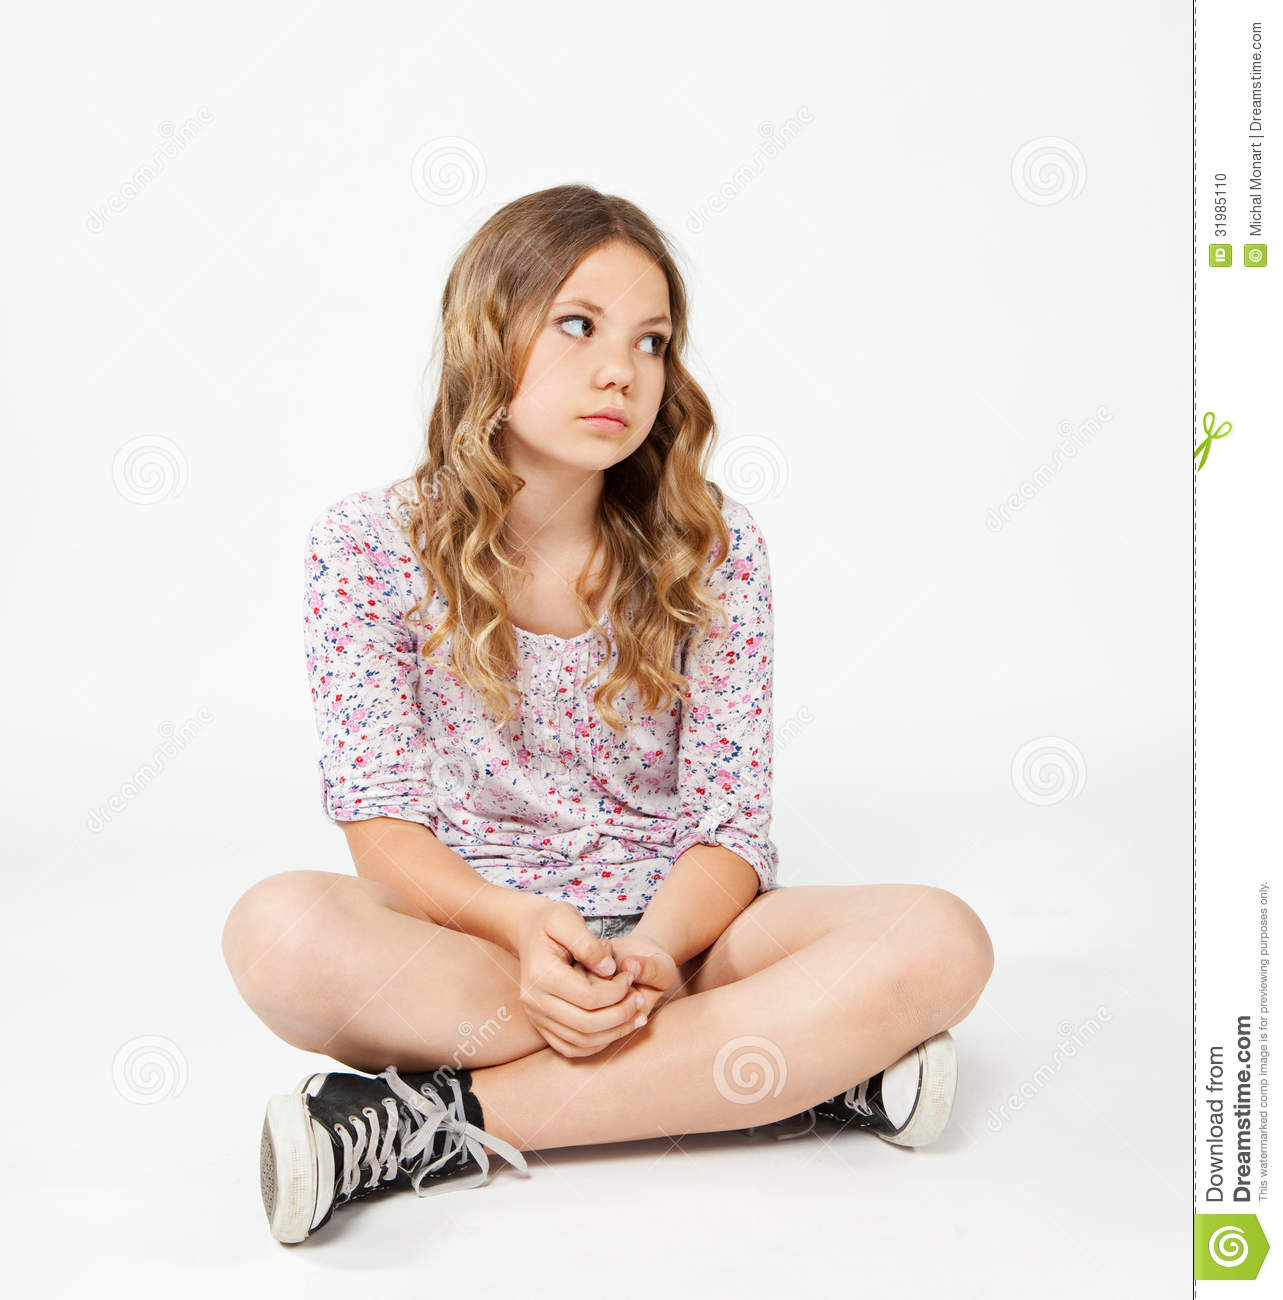 Gallery Floor Plans Teenage Girl Sitting On The Floor With Sad Face Stock